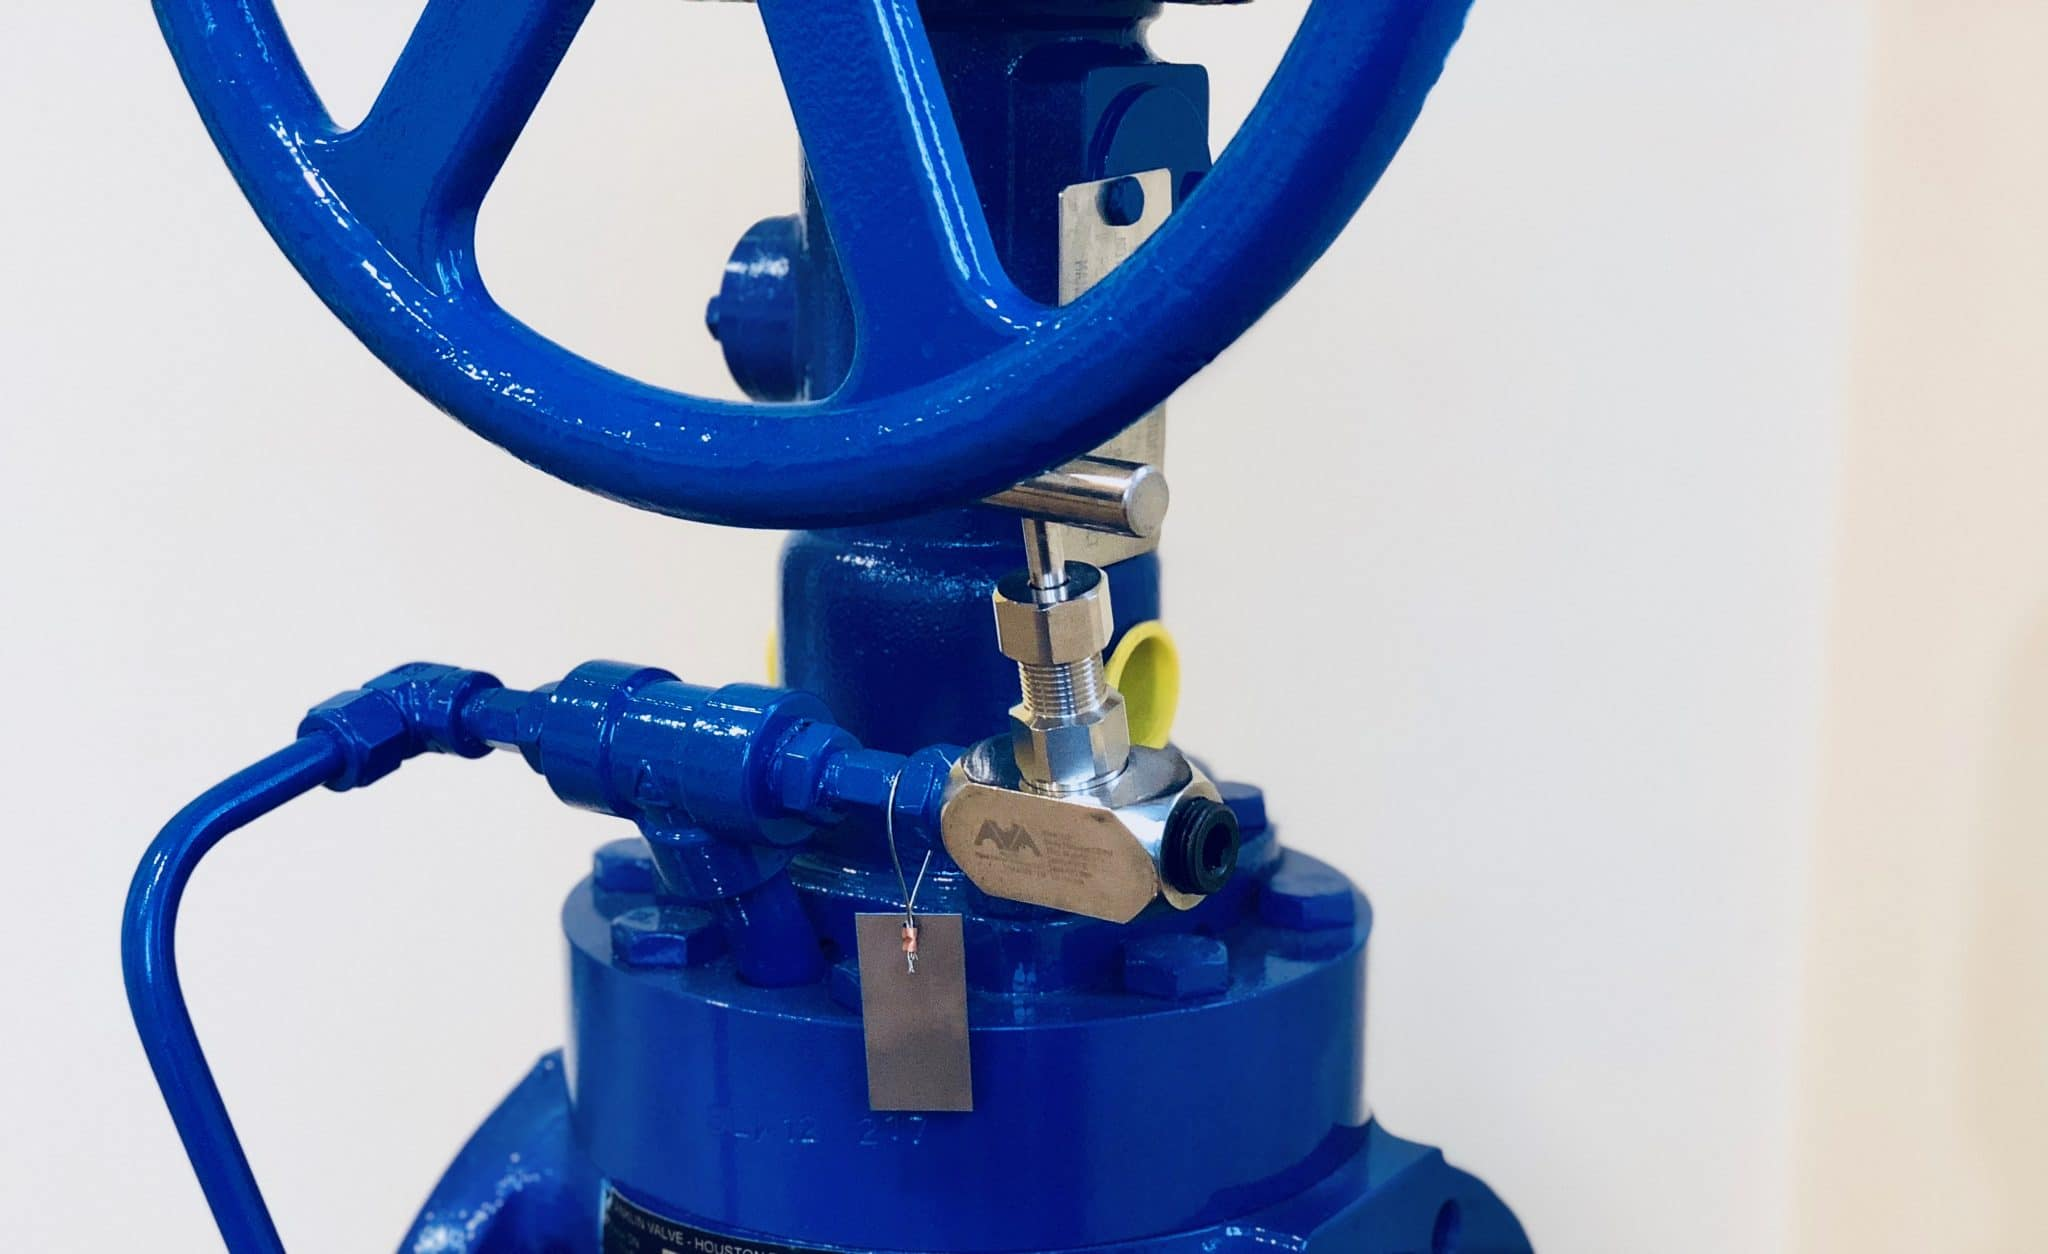 Franklin Duraseal Double Block and Bleed valve